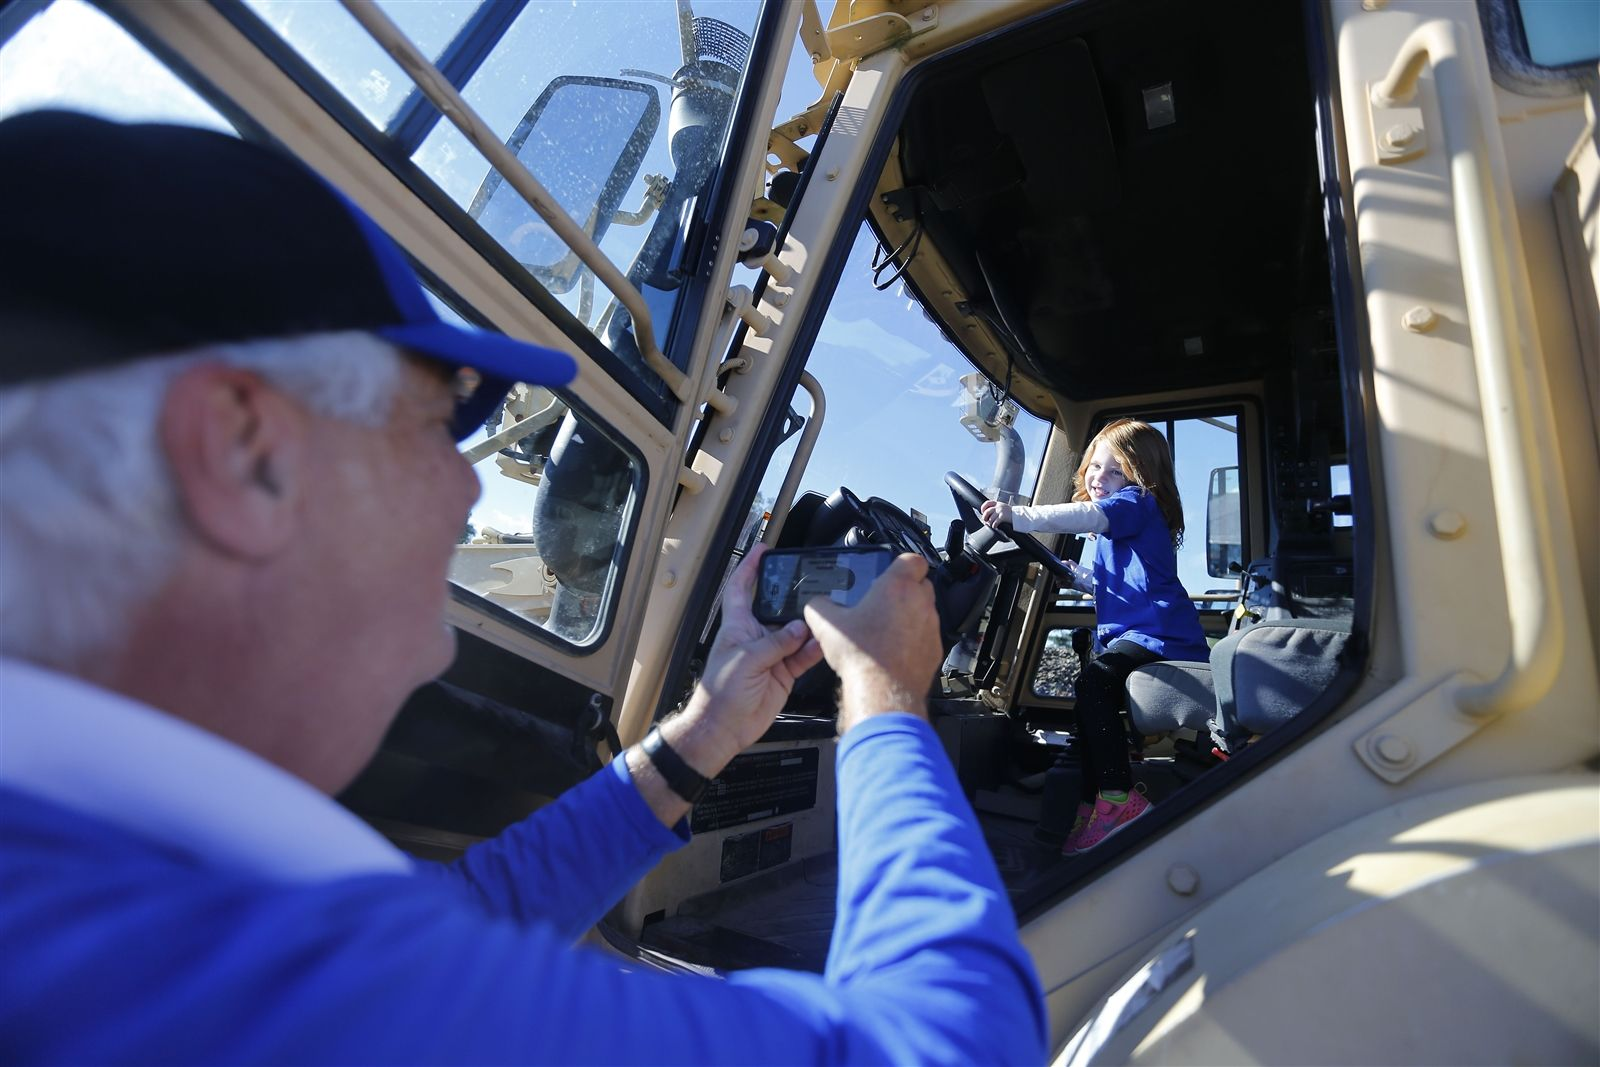 David Sorbo takes a picture of his niece Everly Rauch in a front end loader during tailgate festivities before the UB/Army game at UB Stadium in Amherst Saturday on September 29, 2018.